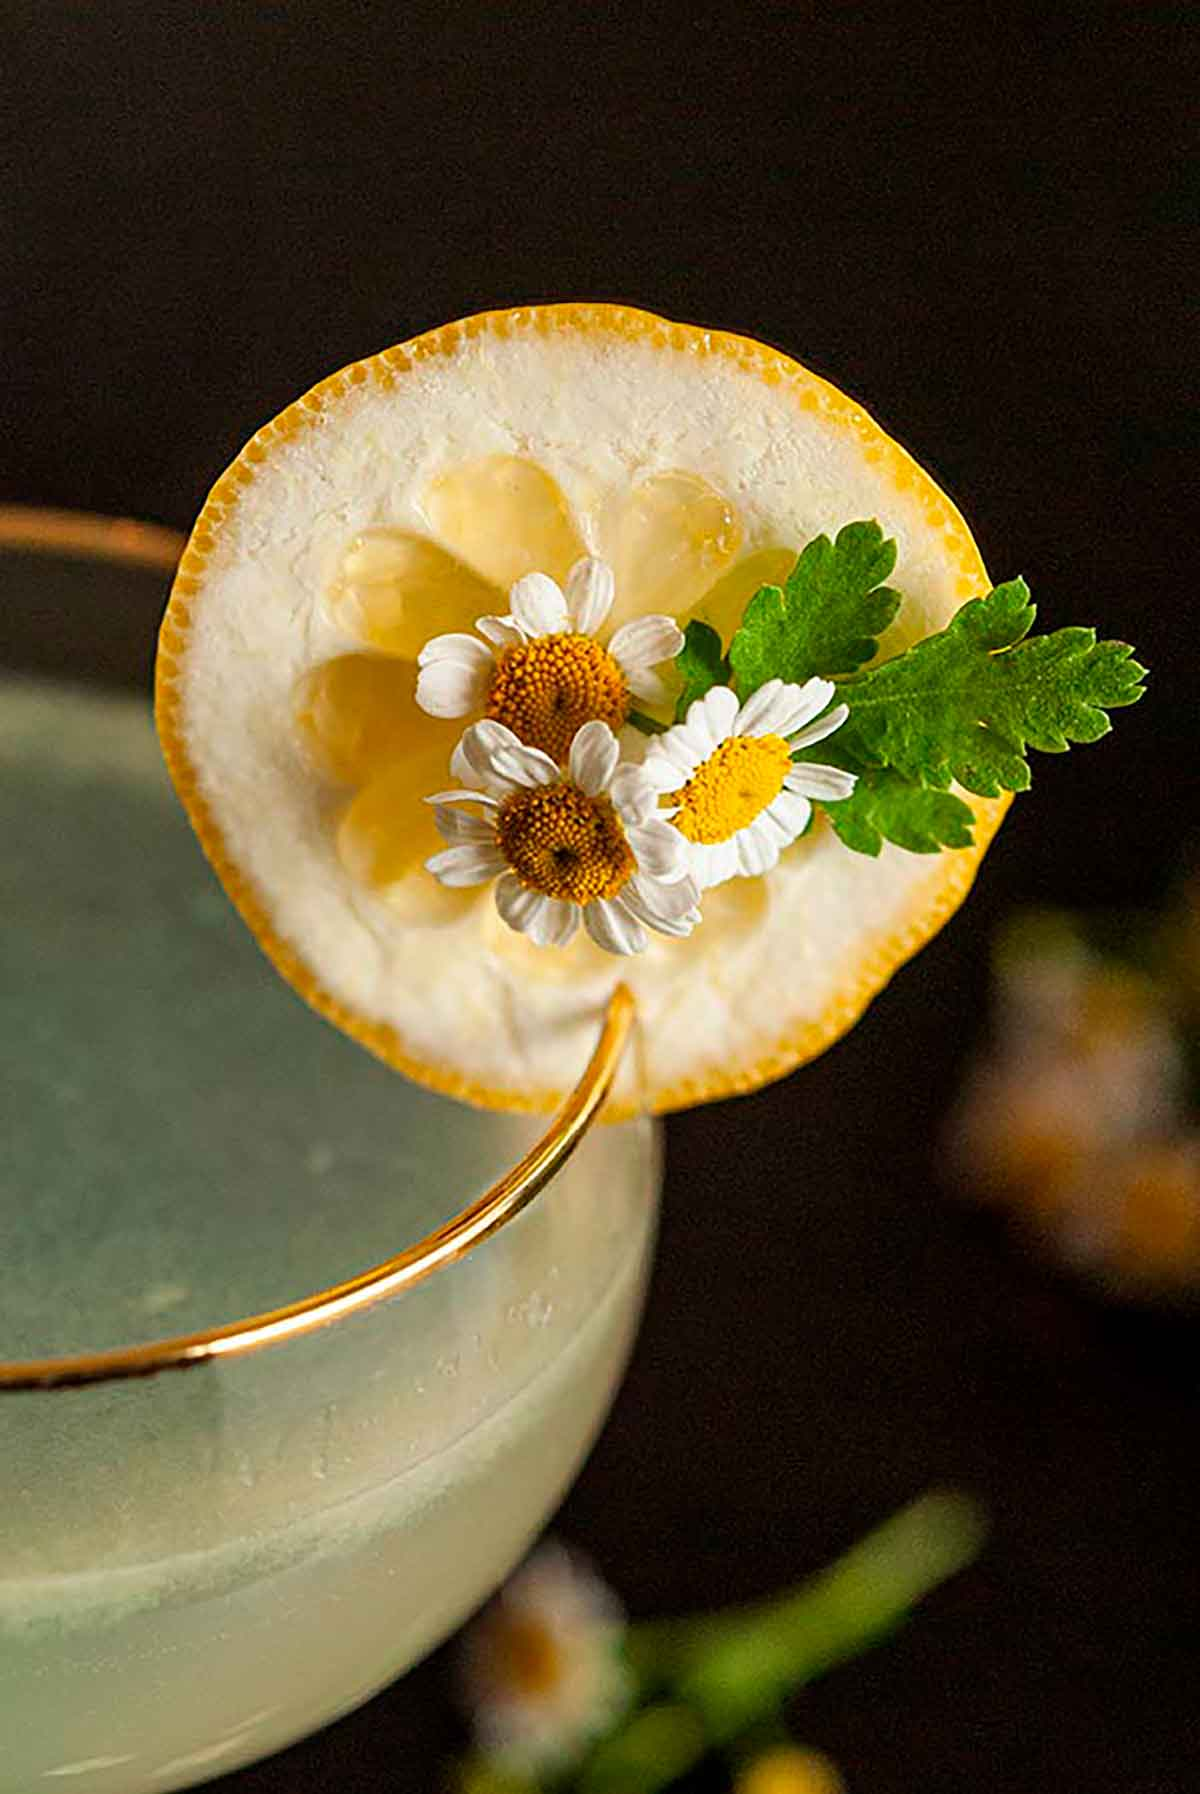 A lemon slice garnish, with daisies in the center, on the edge of a cocktail glass.